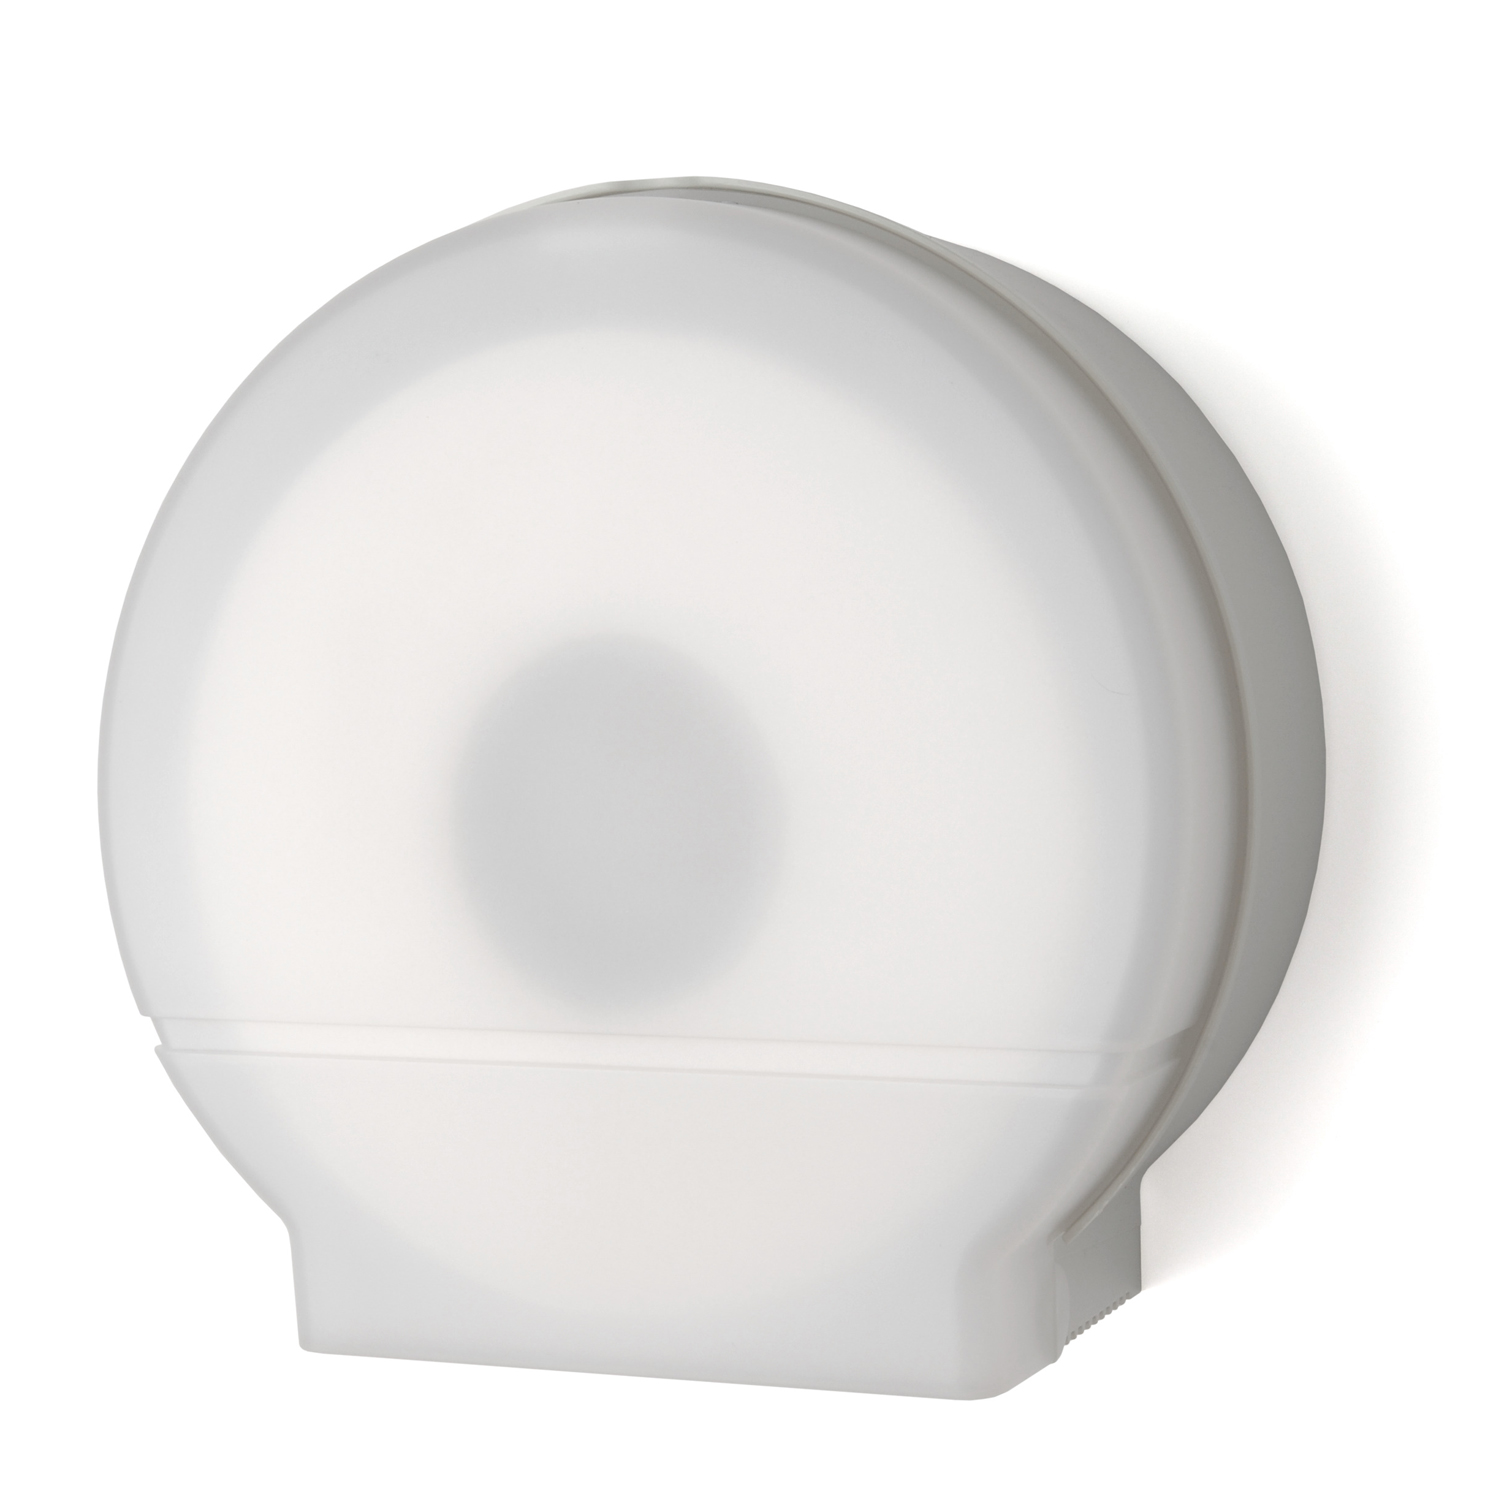 Single 9 Inch Jumbo Roll Toilet Tissue Dispenser: Translucent White